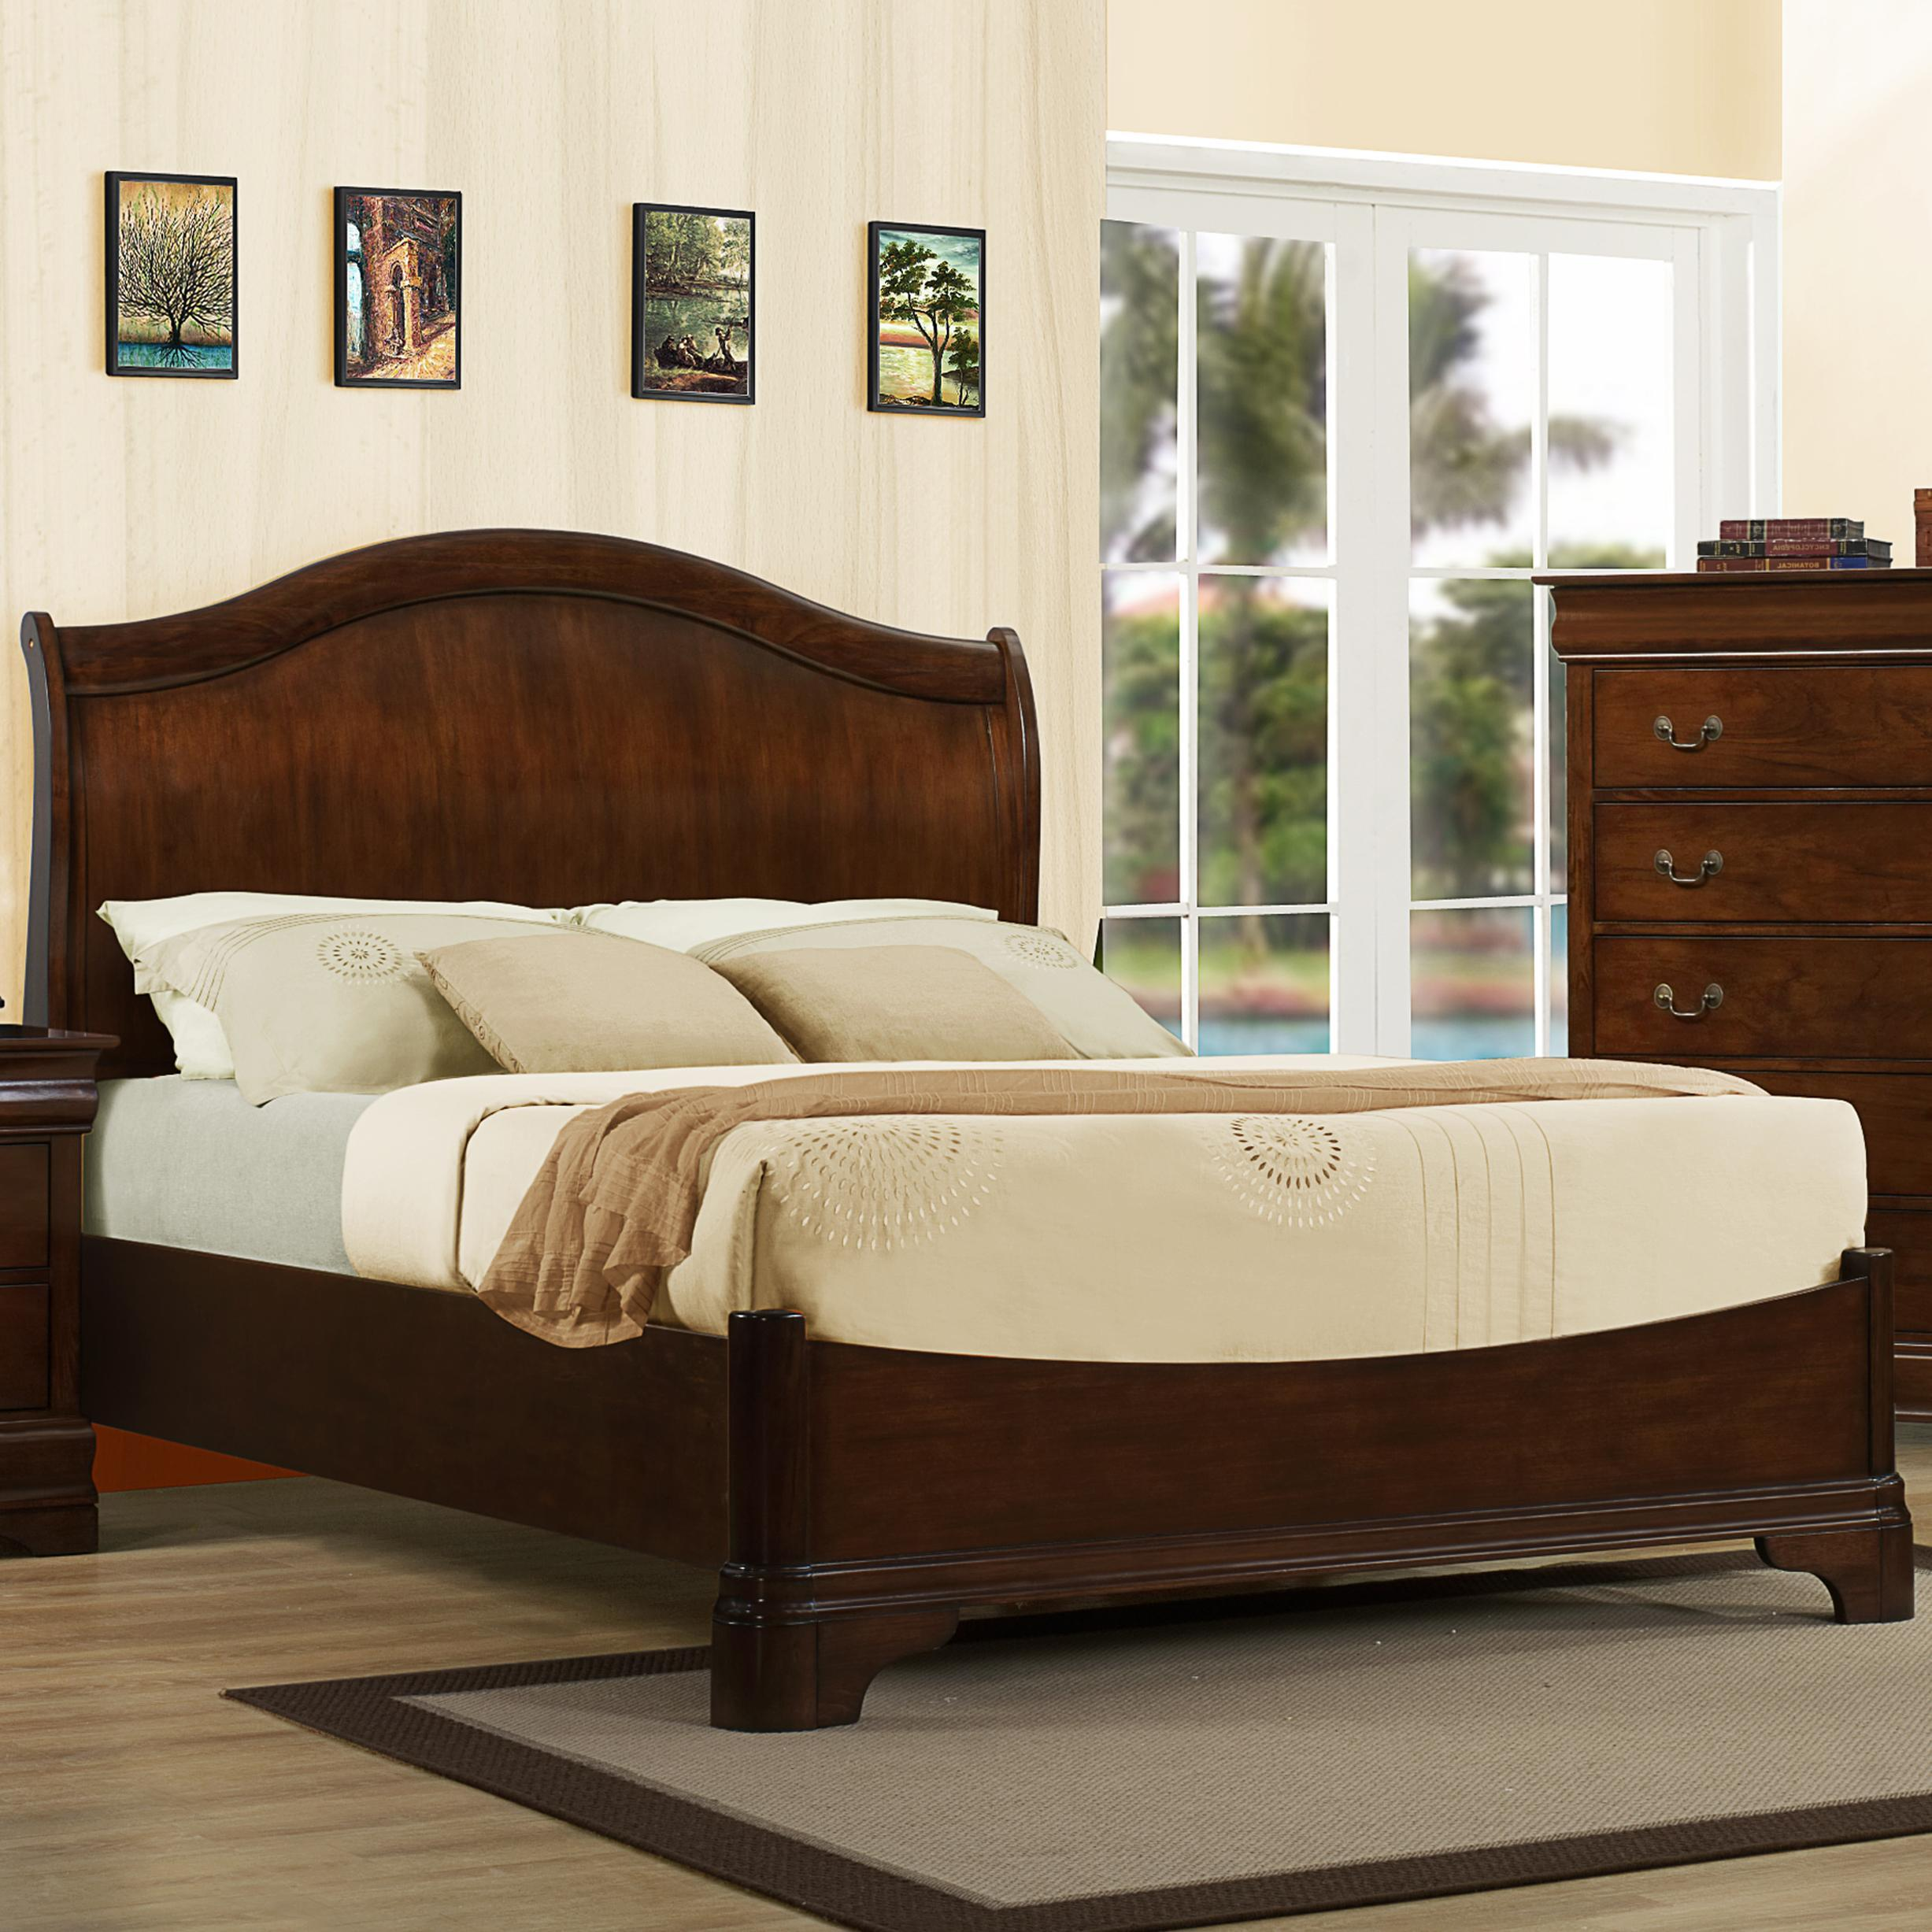 Austin Group Big Louis Queen Transitional Headboard Bed - Item Number: AUGR-GRP-456-QNBED